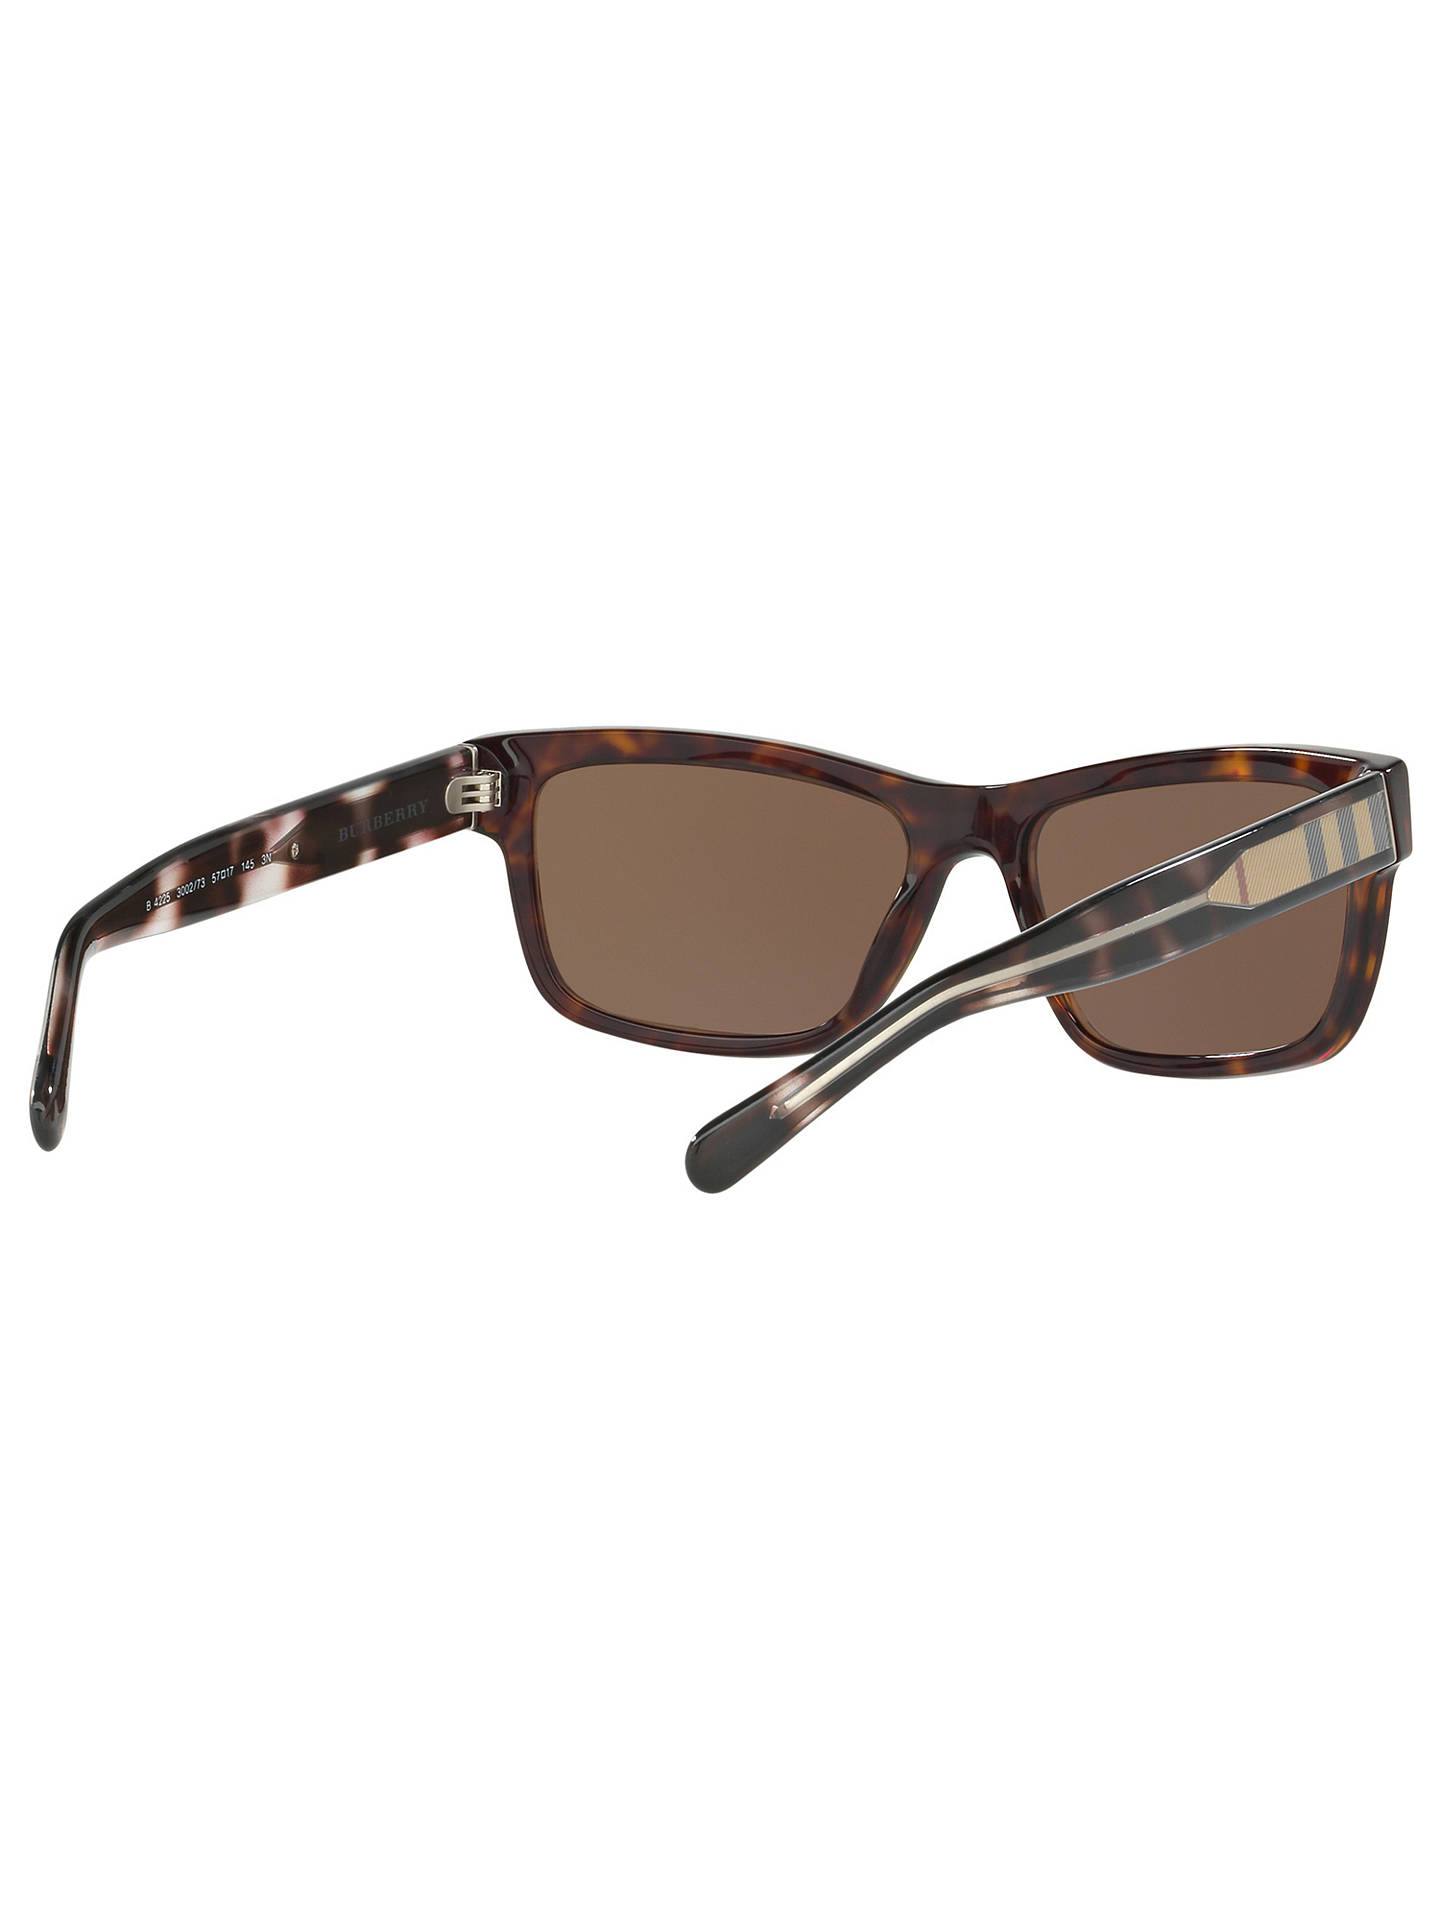 BuyBurberry BE4225 Rectangular Sunglasses, Tortoise Online at johnlewis.com